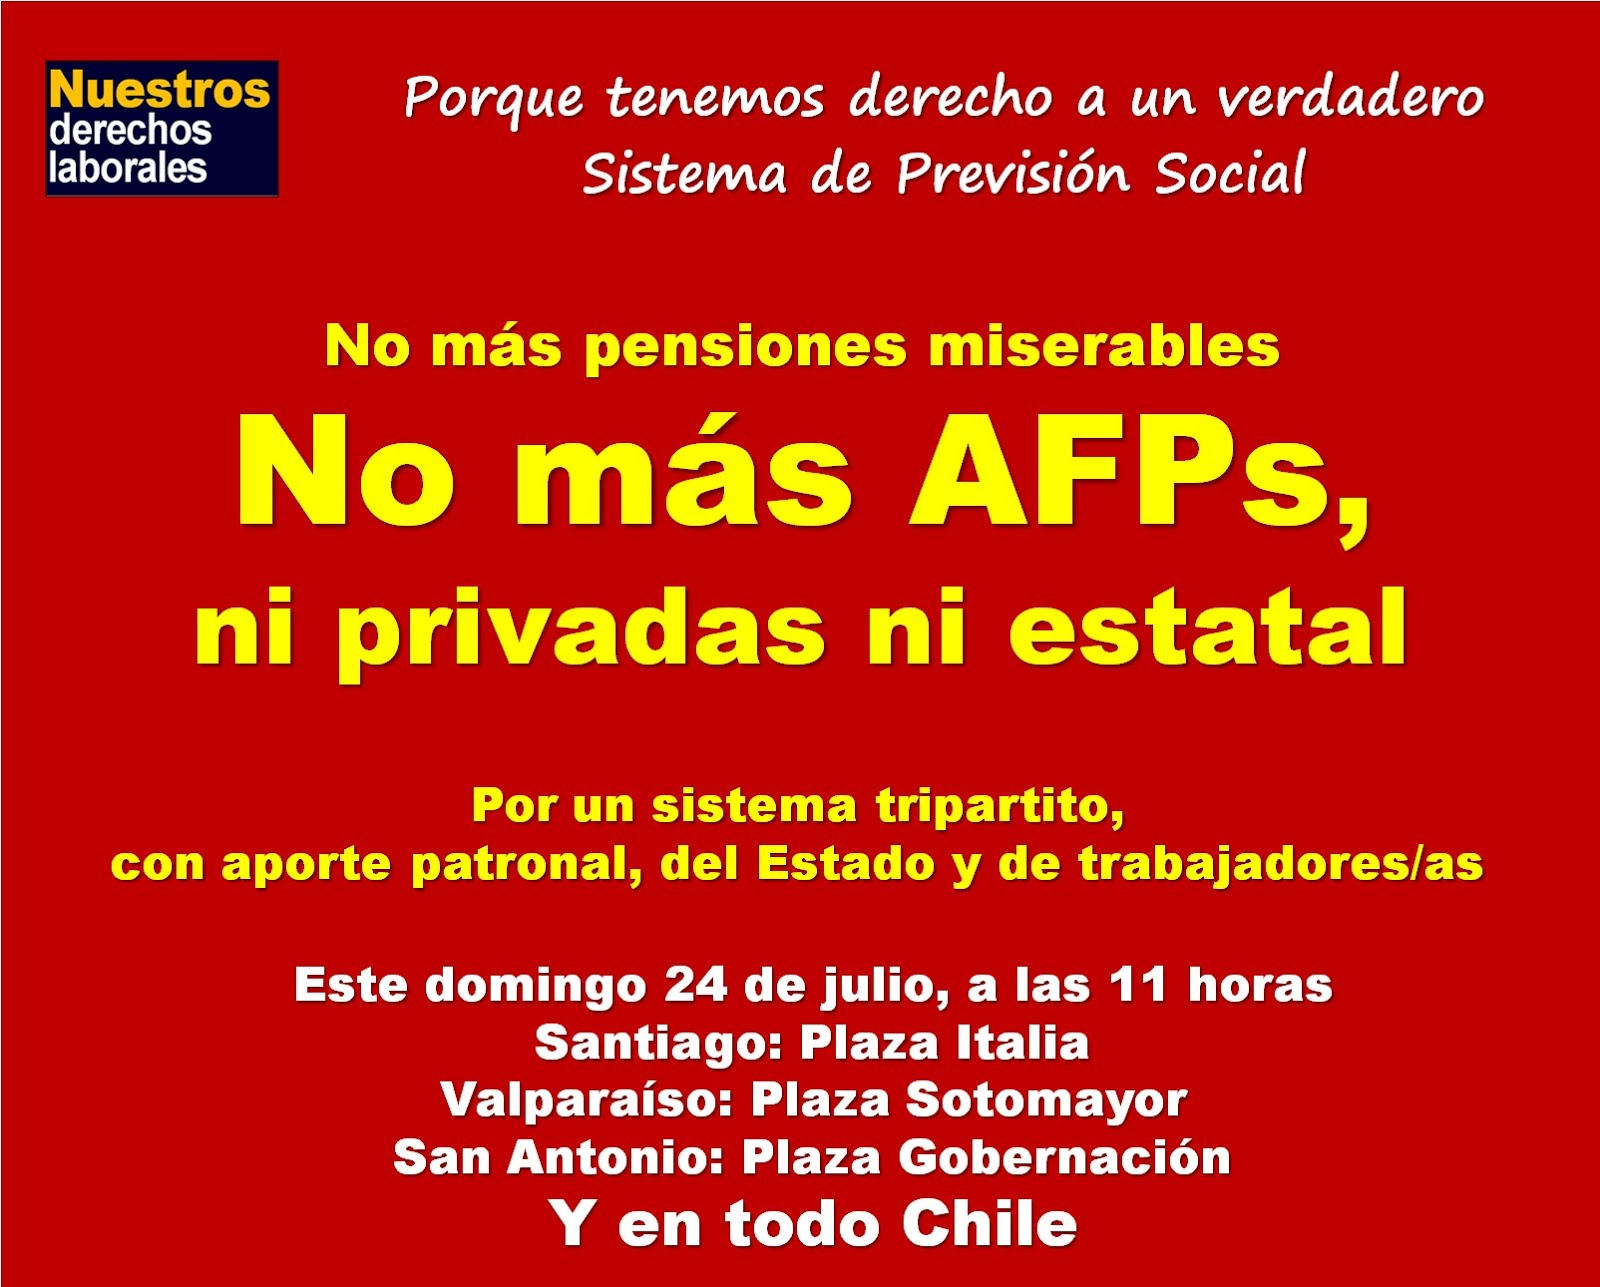 No más AFPs, ni privadas ni estatal. Domingo 24 de julio, en todo Chile.